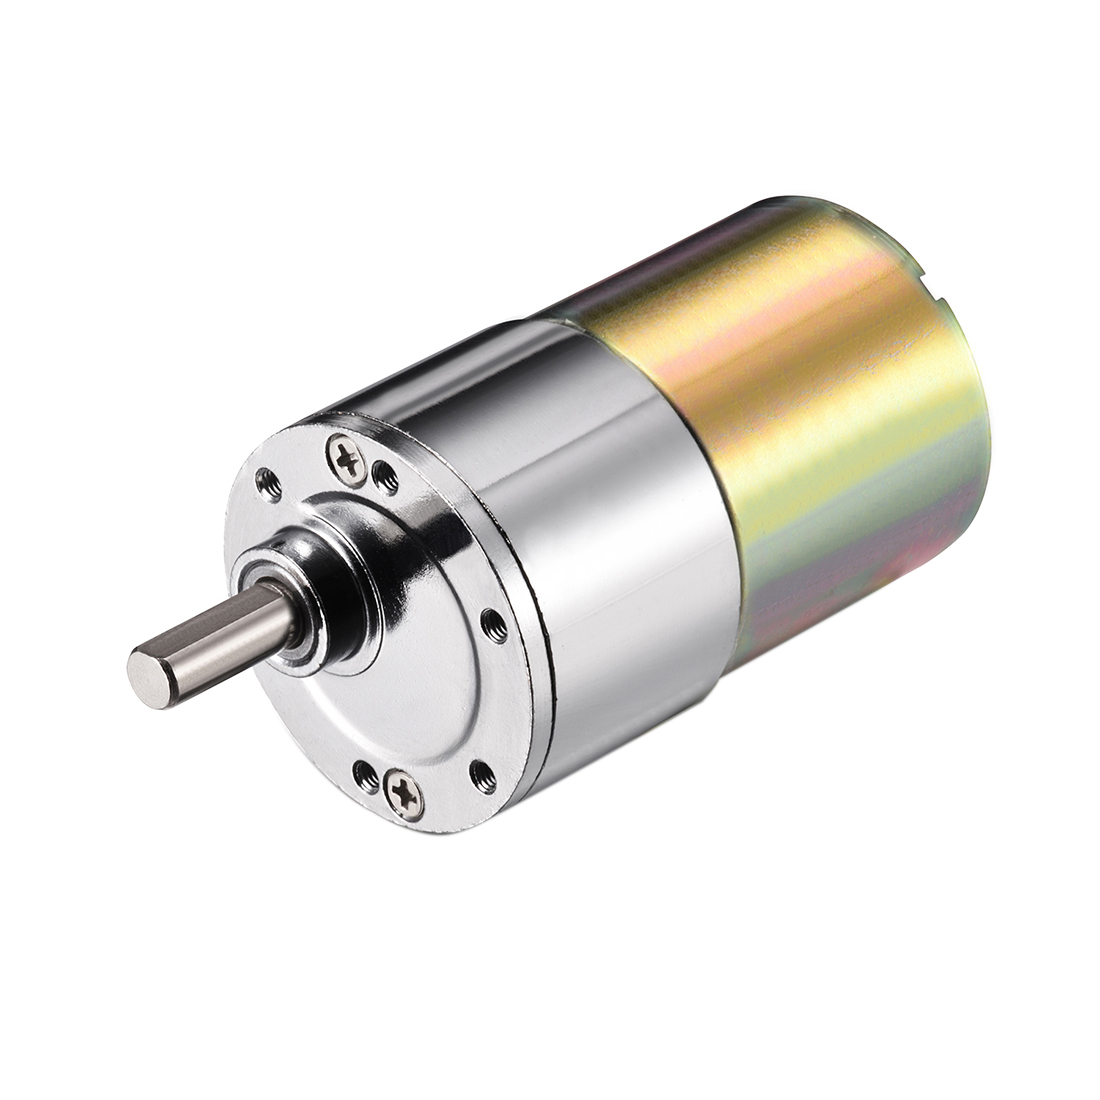 DC 12V 500RPM Micro Gear Box Motor Speed Reduction Electric Gearbox Eccentric Output Shaft